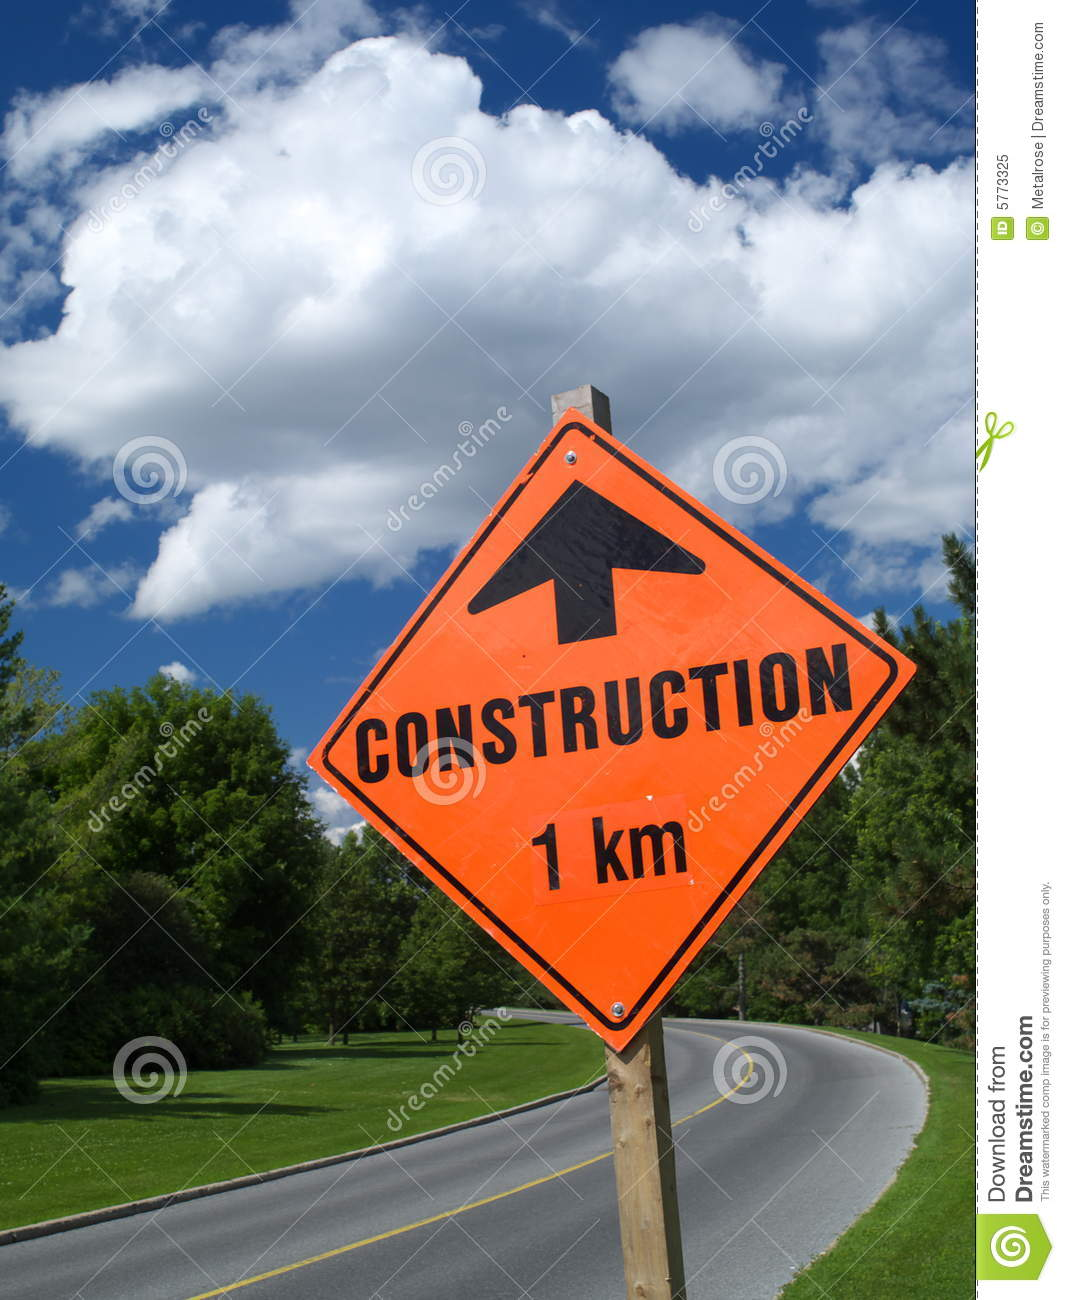 Road sign stock image  Image of scene, country, colorful - 5773325